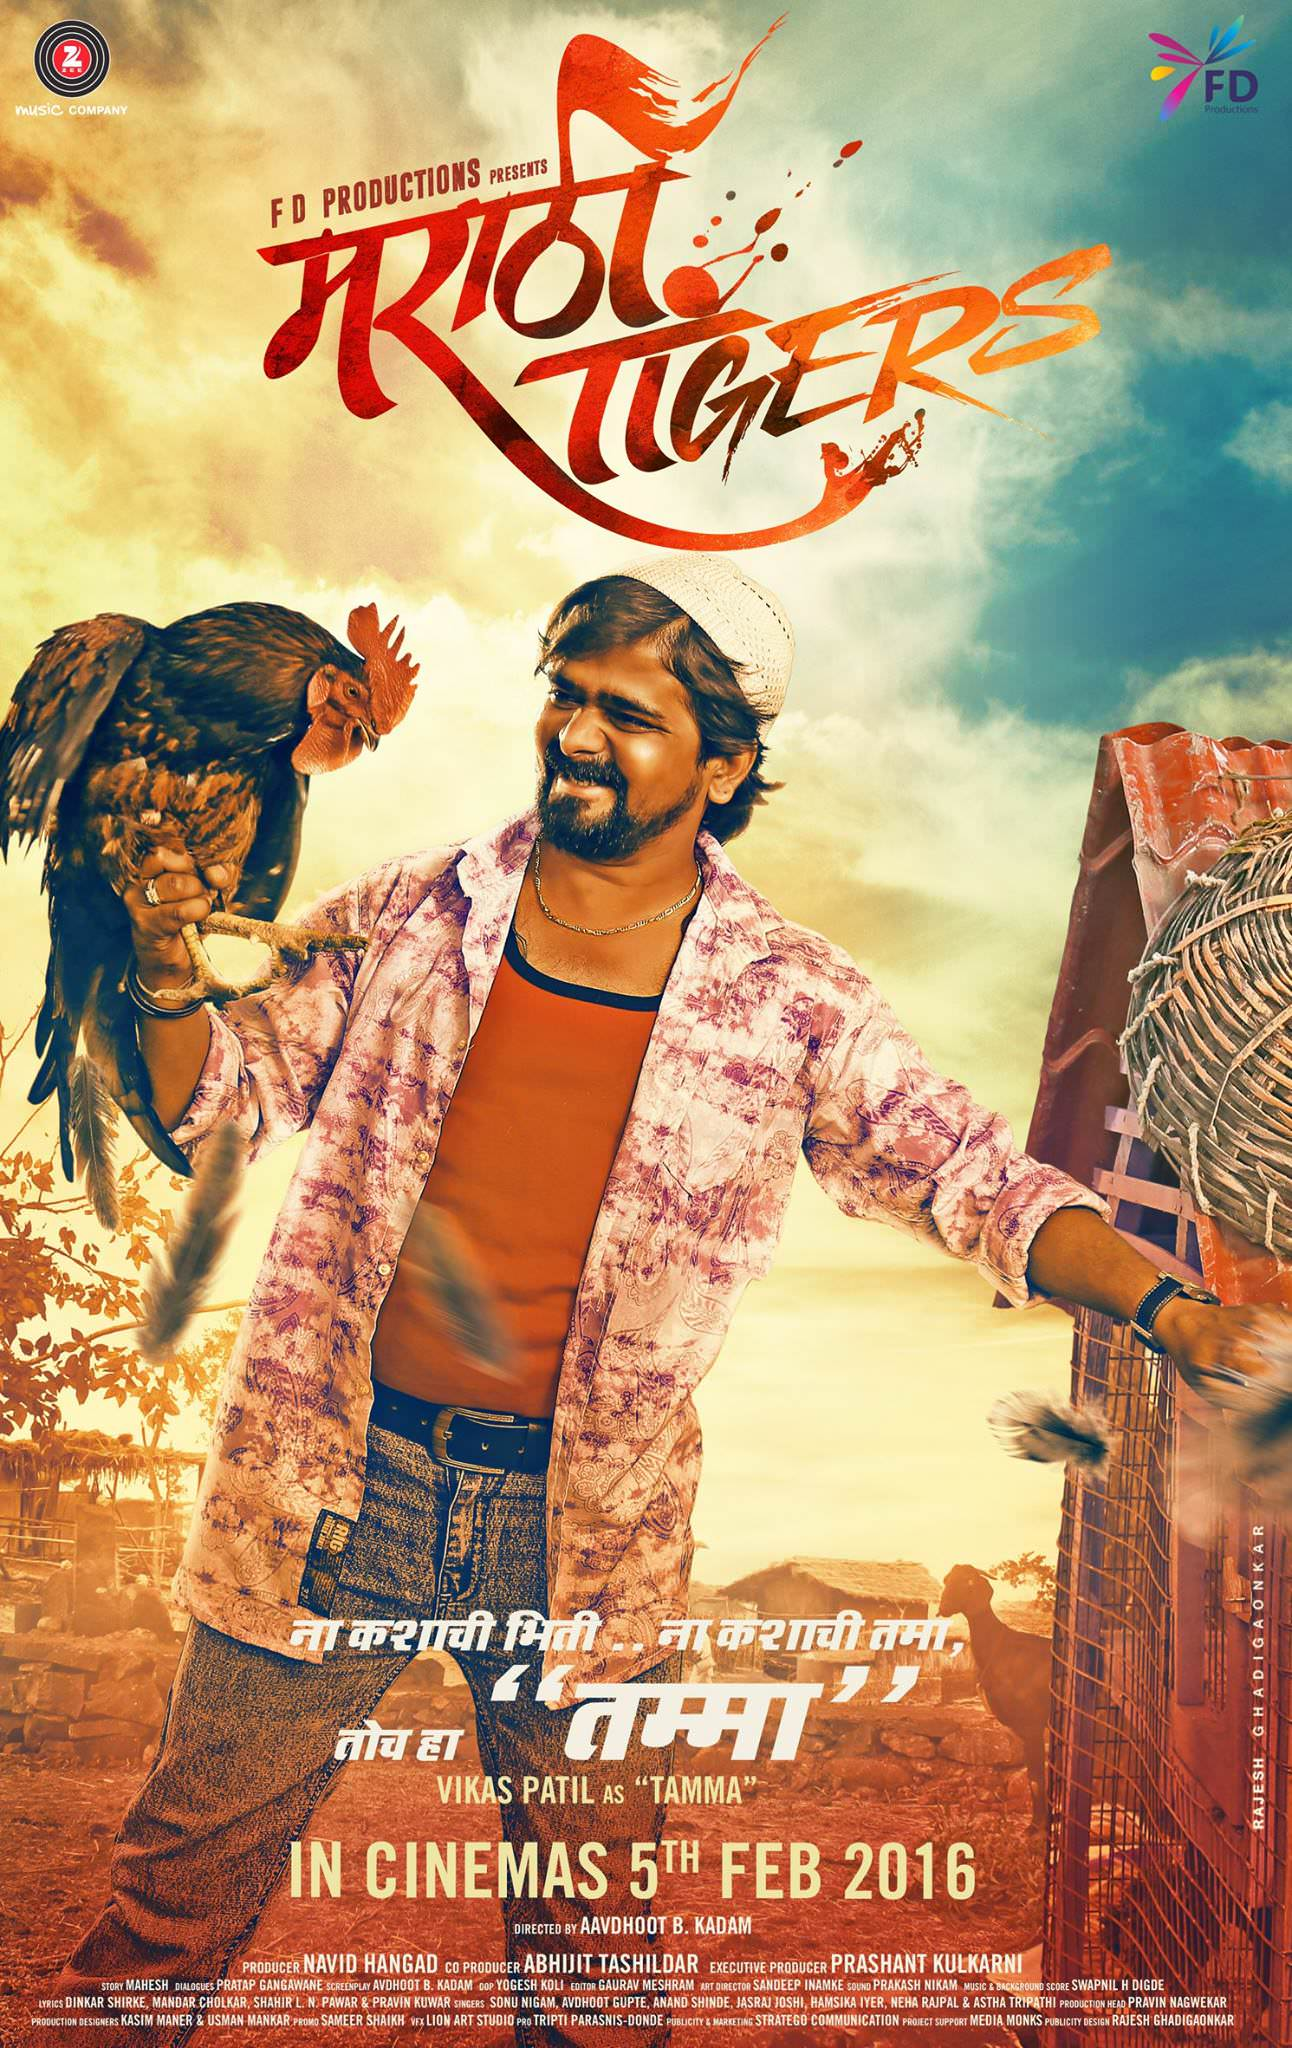 Marathi Tigers 2016  Marathi Movie Cast Story Trailer Release Date Wiki Images Poster